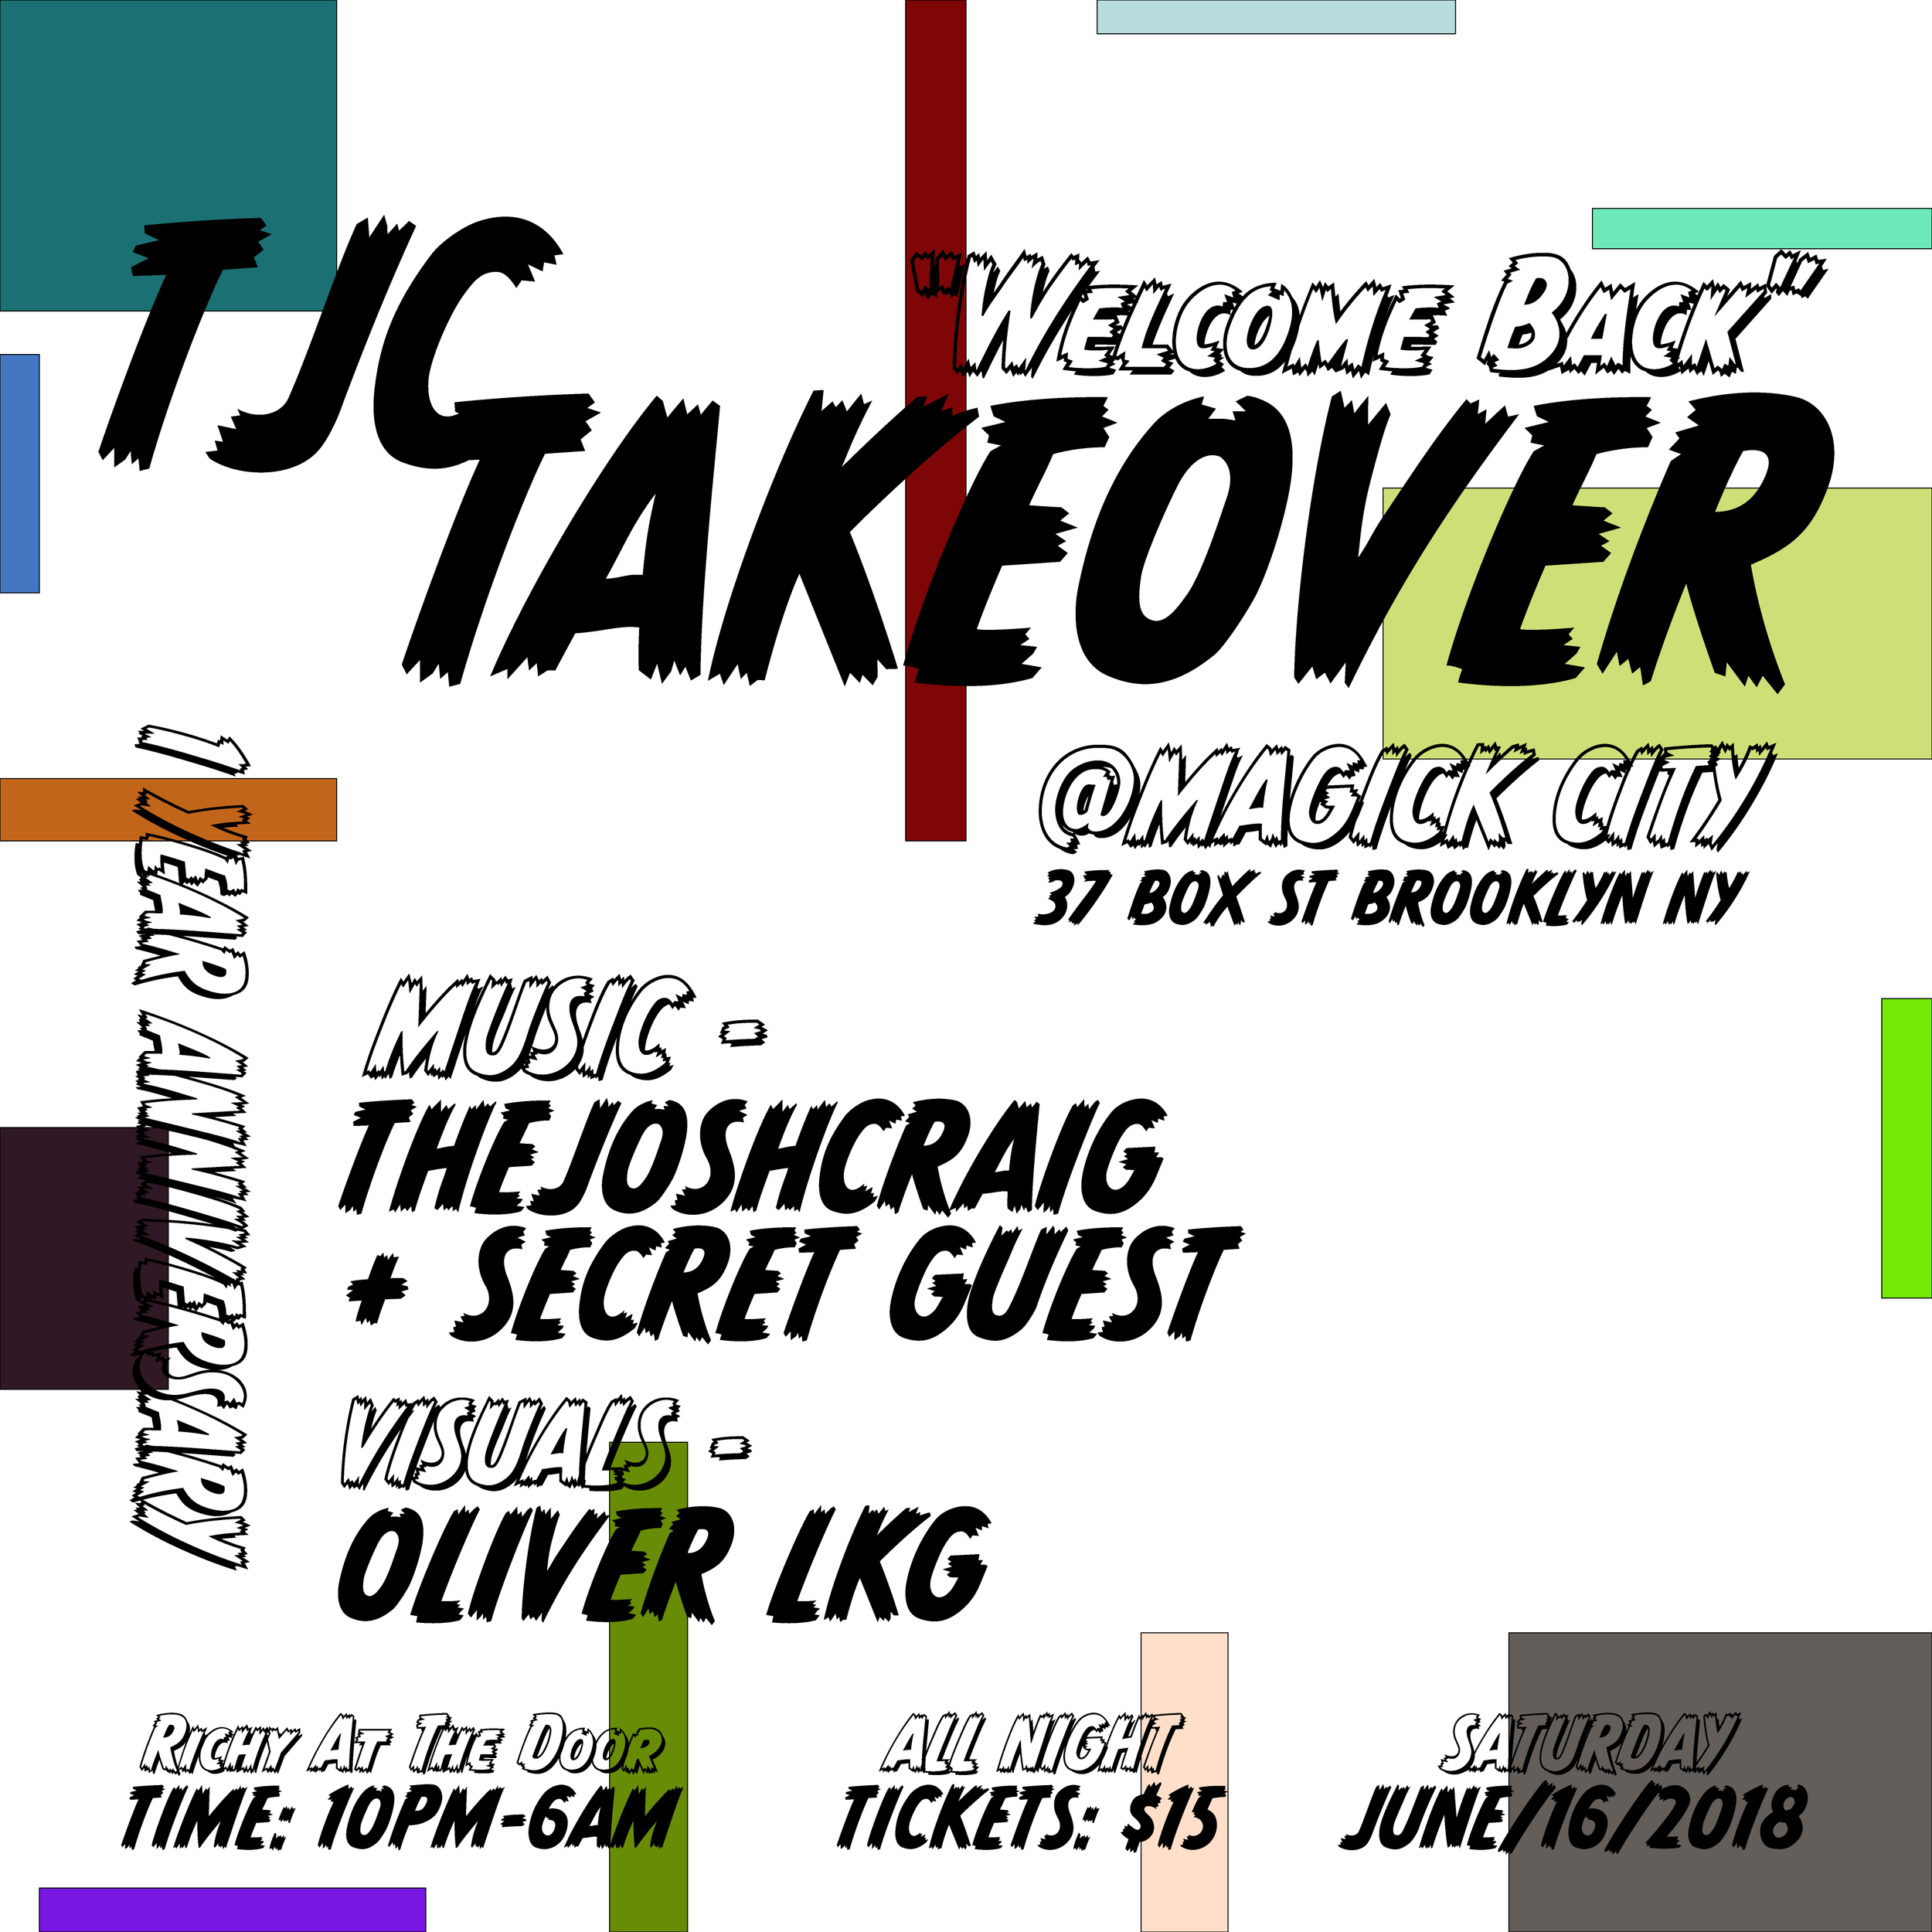 takeover-6-18@2x.png